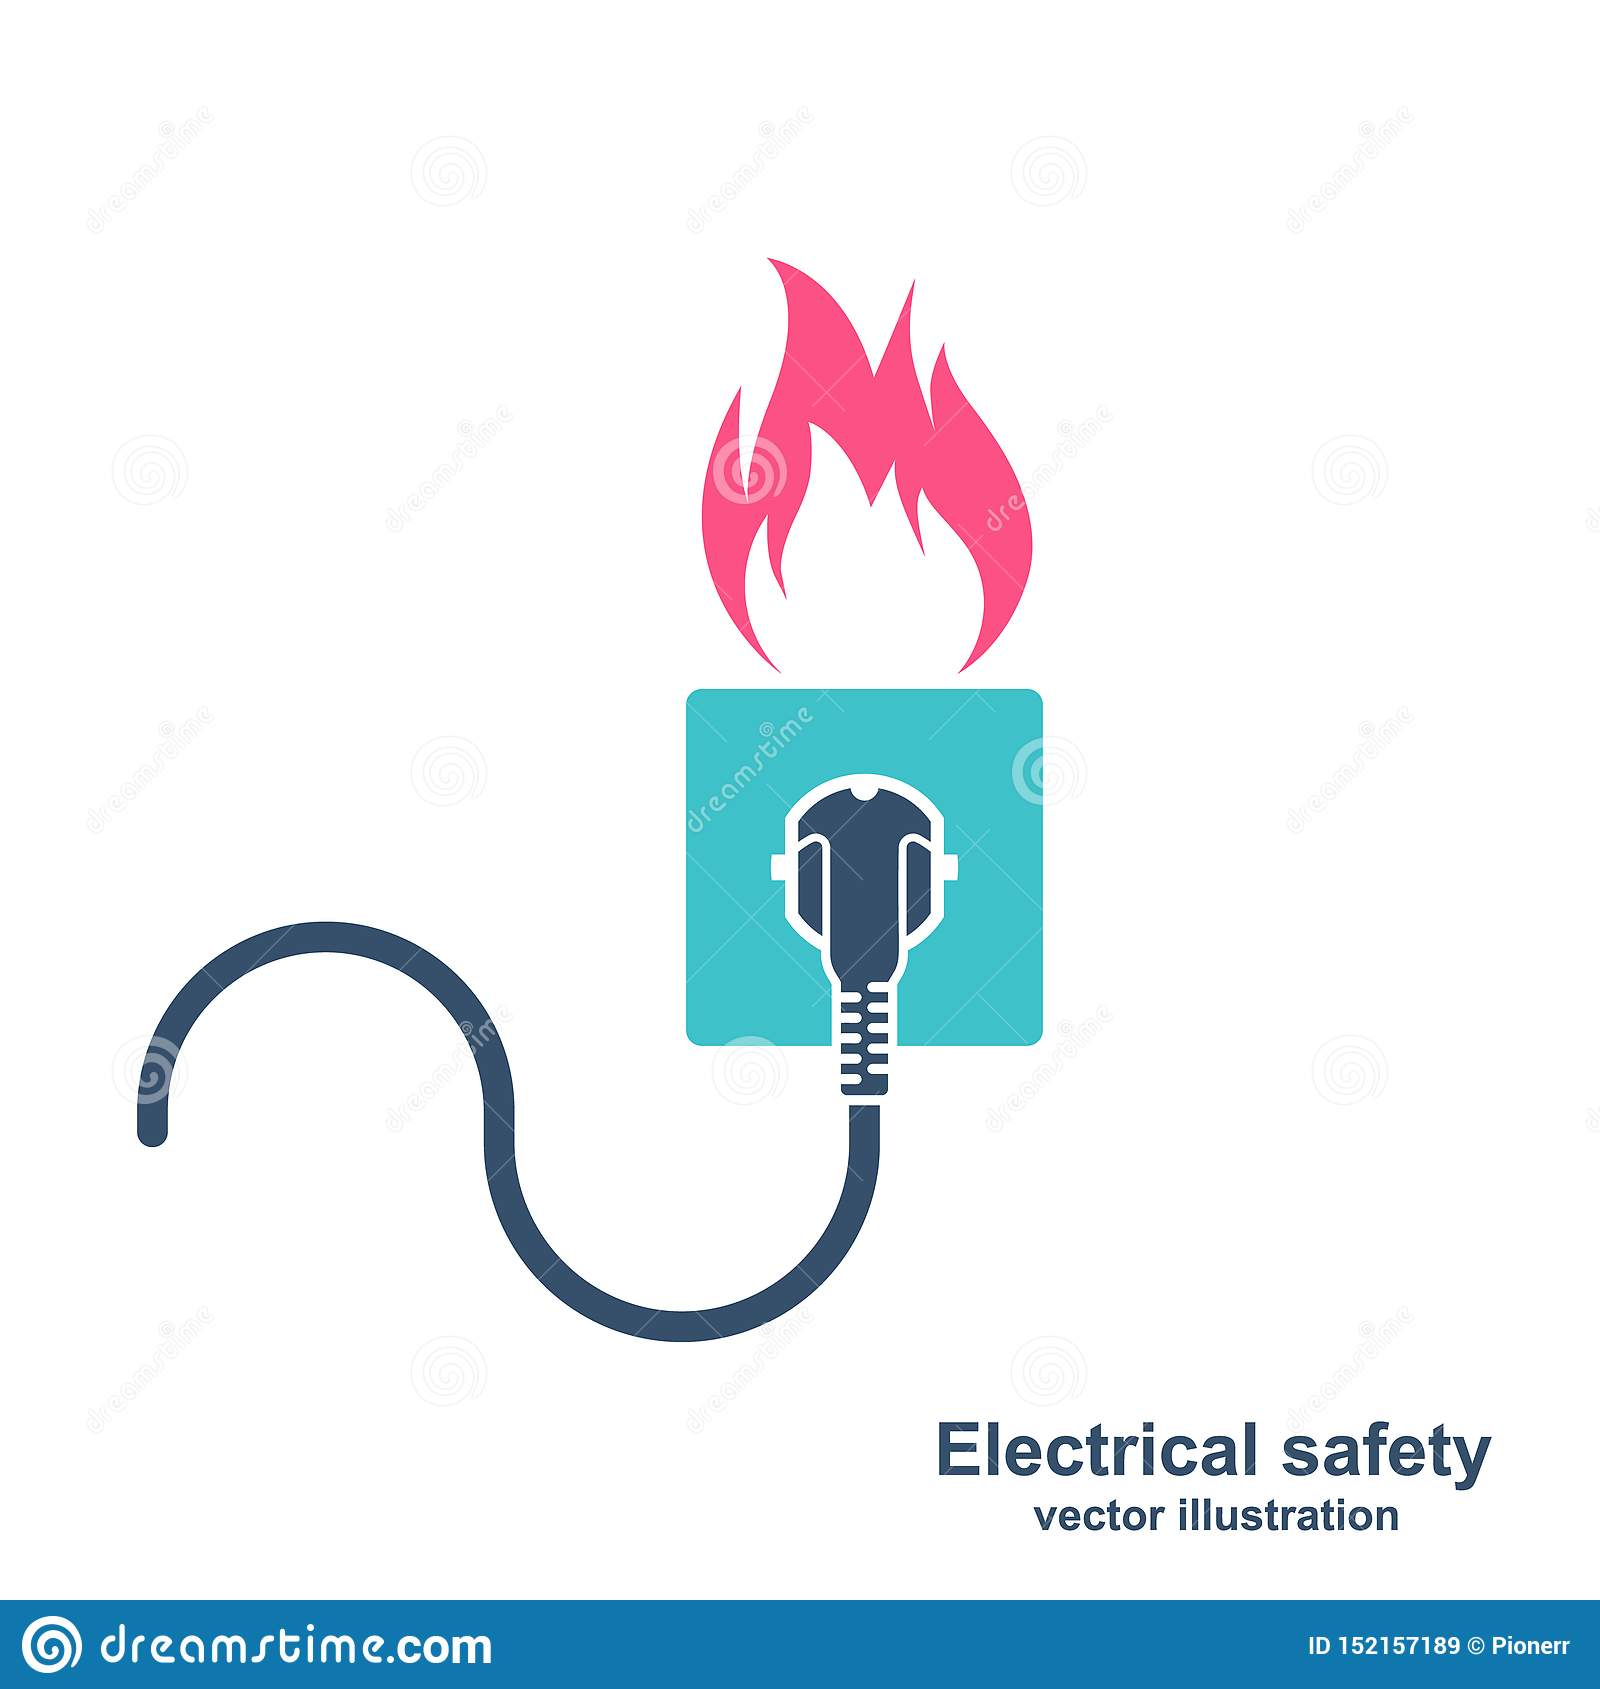 Colorful Silhouette Fire Wiring Stock Vector Illustration Of Outlet Accident 152157189